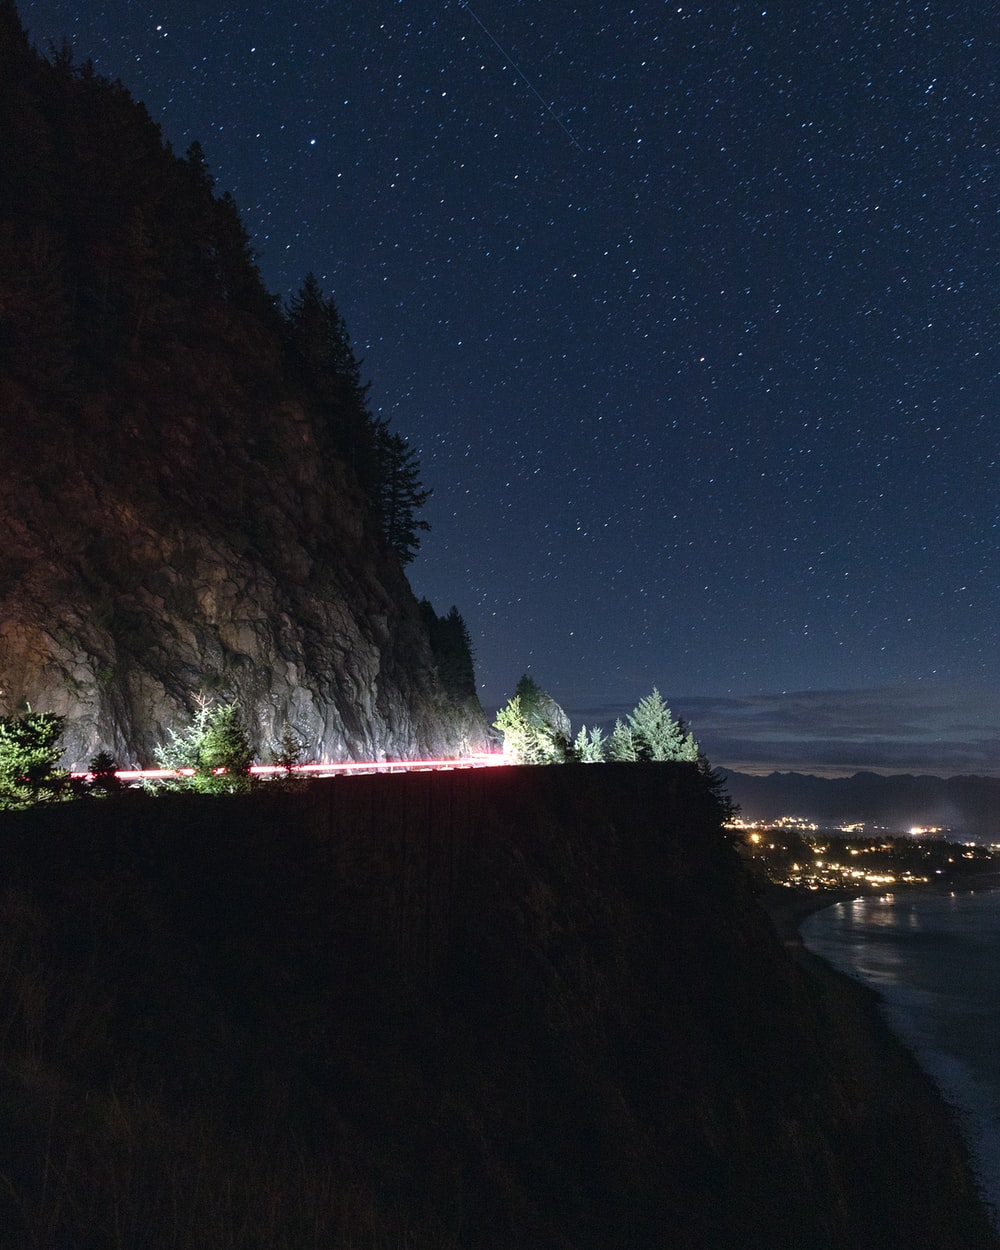 brown mountain near body of water during night time